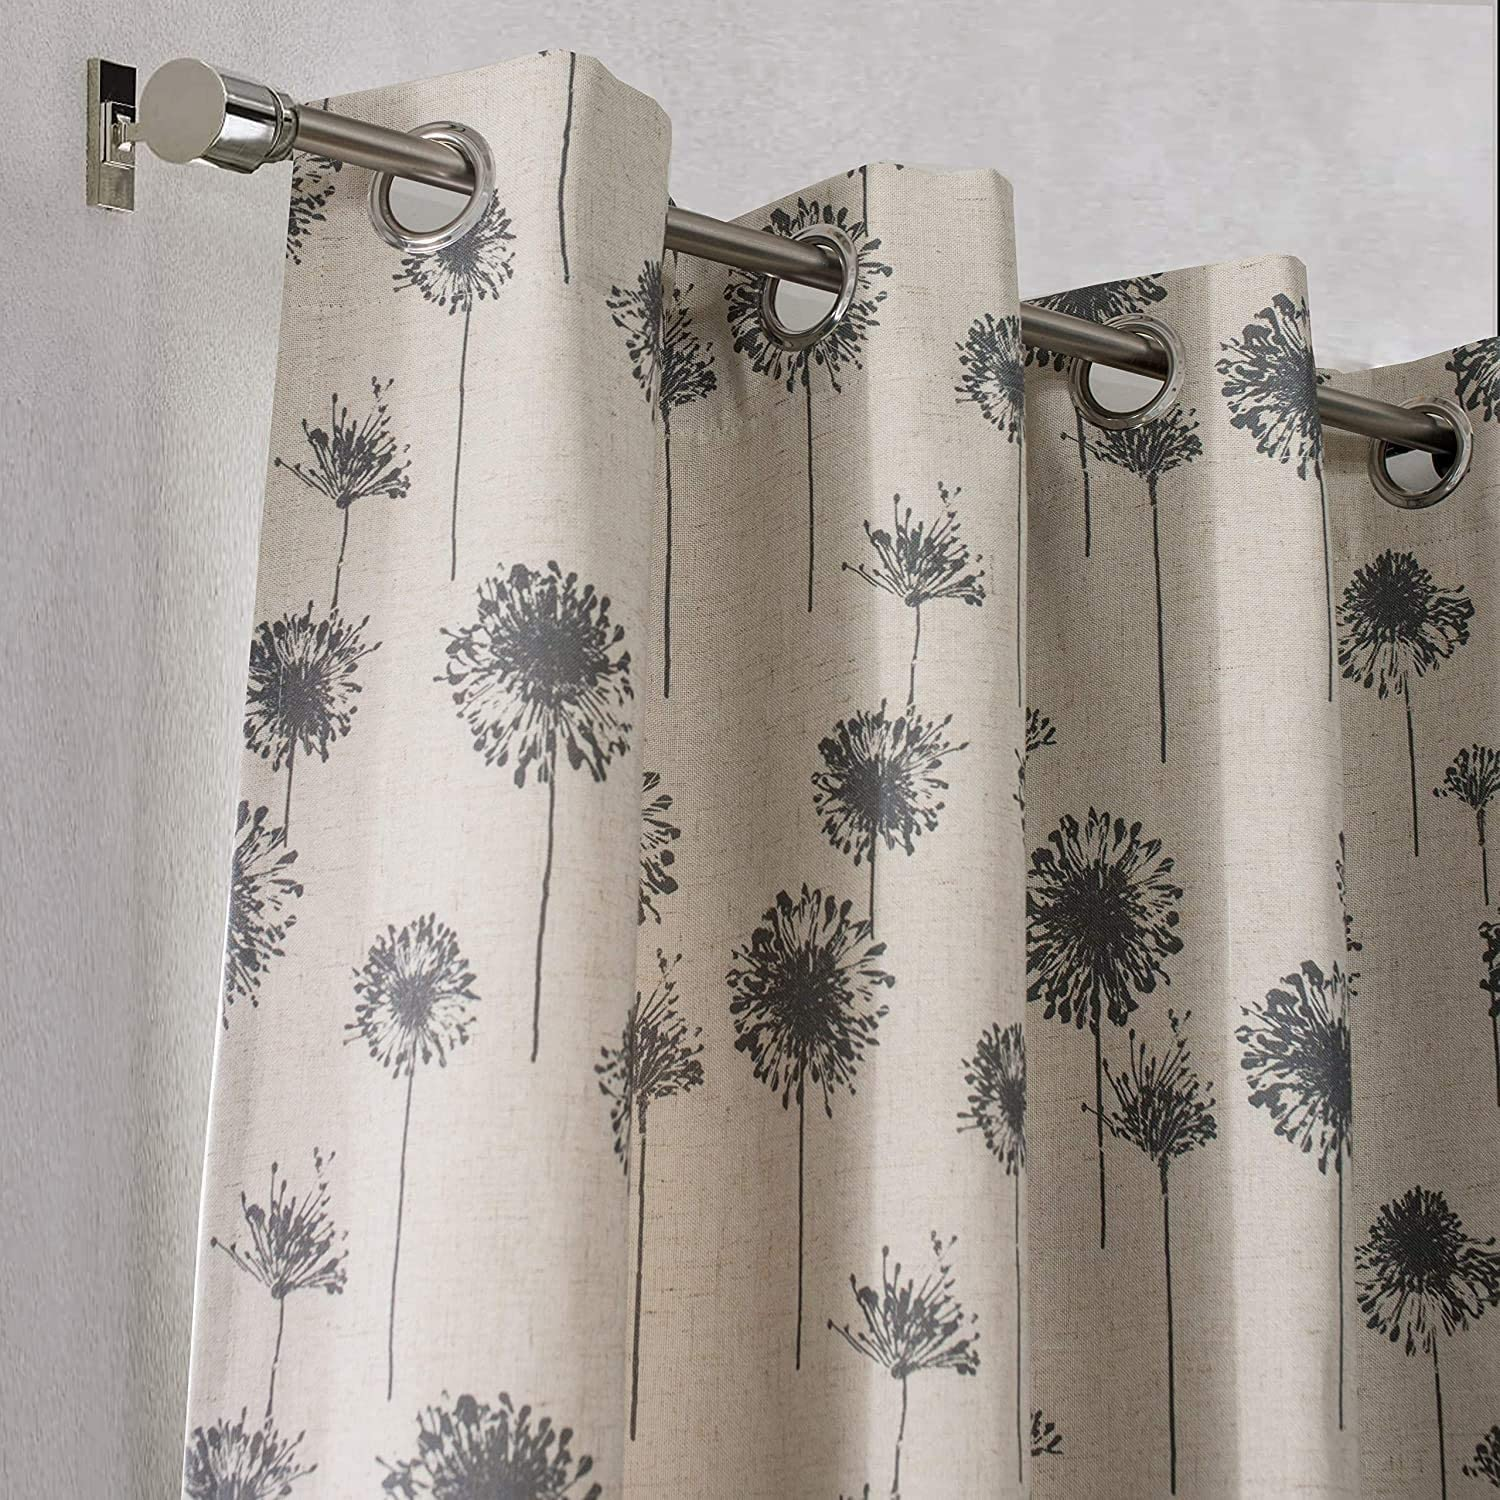 "UKN Dandelion Floral Botanic Linen Blend Lined Grommet Window Curtains 52"" Width X 84"" Length Grey Modern Contemporary Thermal"